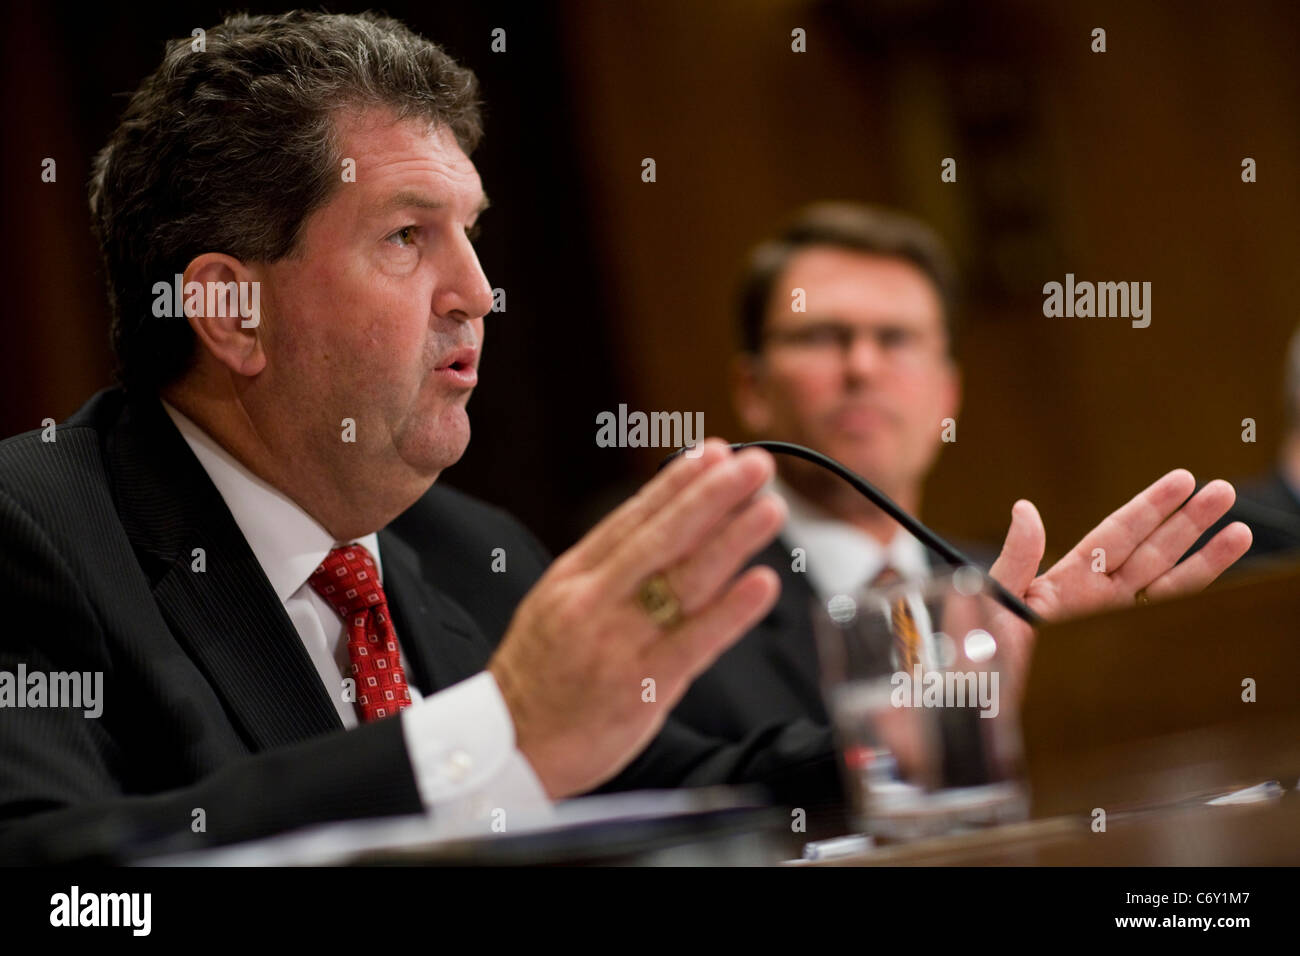 United States Postal Service Postmaster General Patrick Donahoe.  - Stock Image